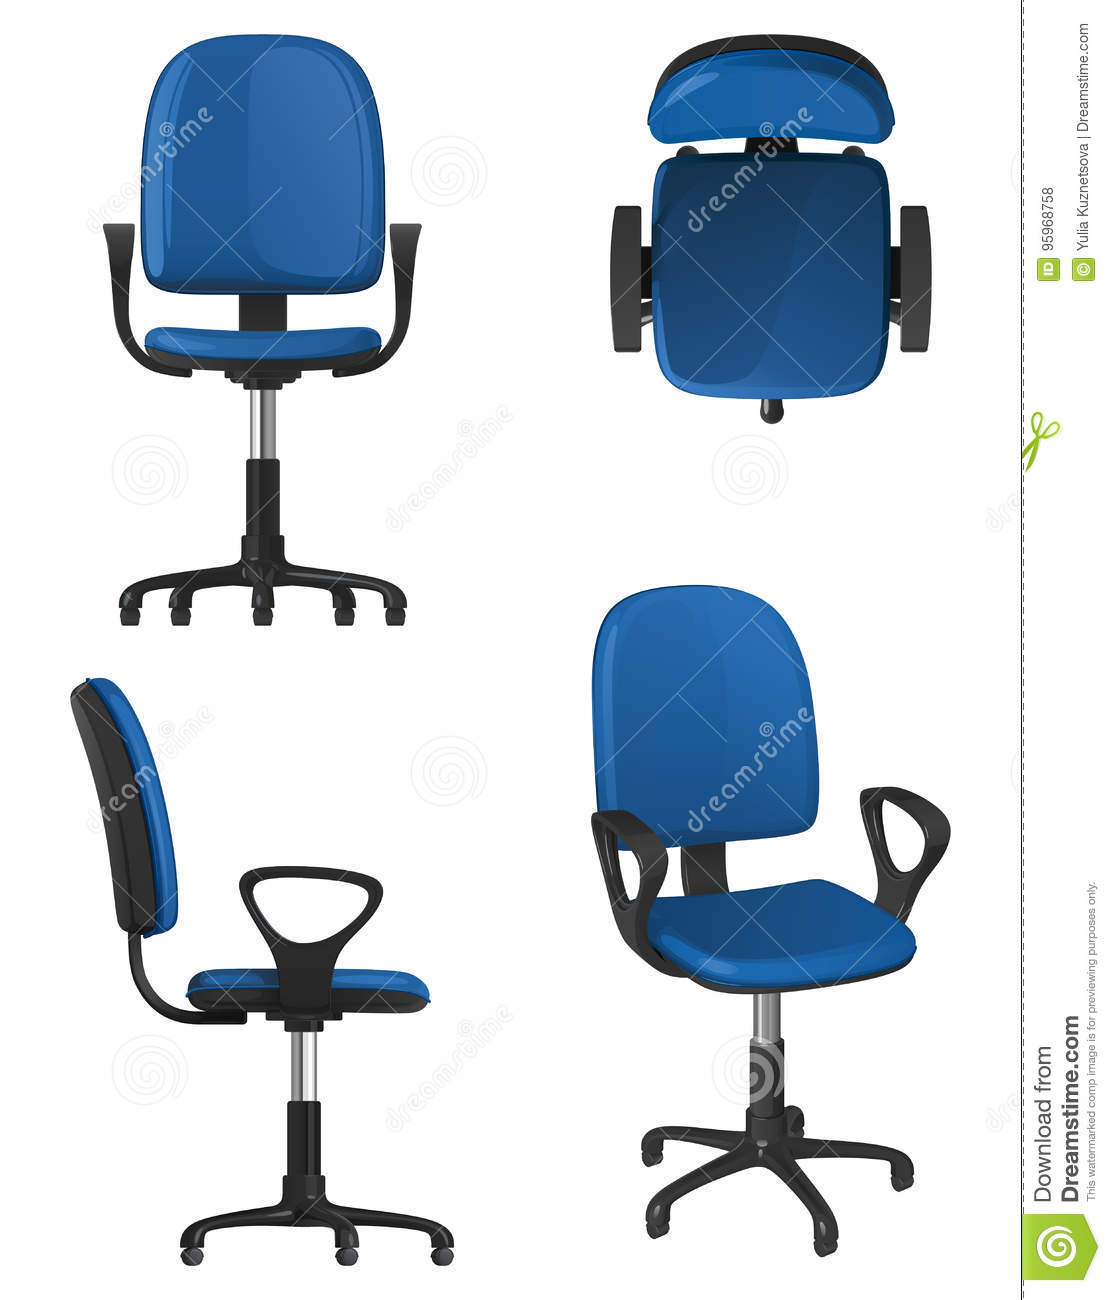 Picture of: A Twisting Office Chair On Wheels With A Blue Upholstery Seat And Backrest Stock Vector Illustration Of Furniture View 95968758